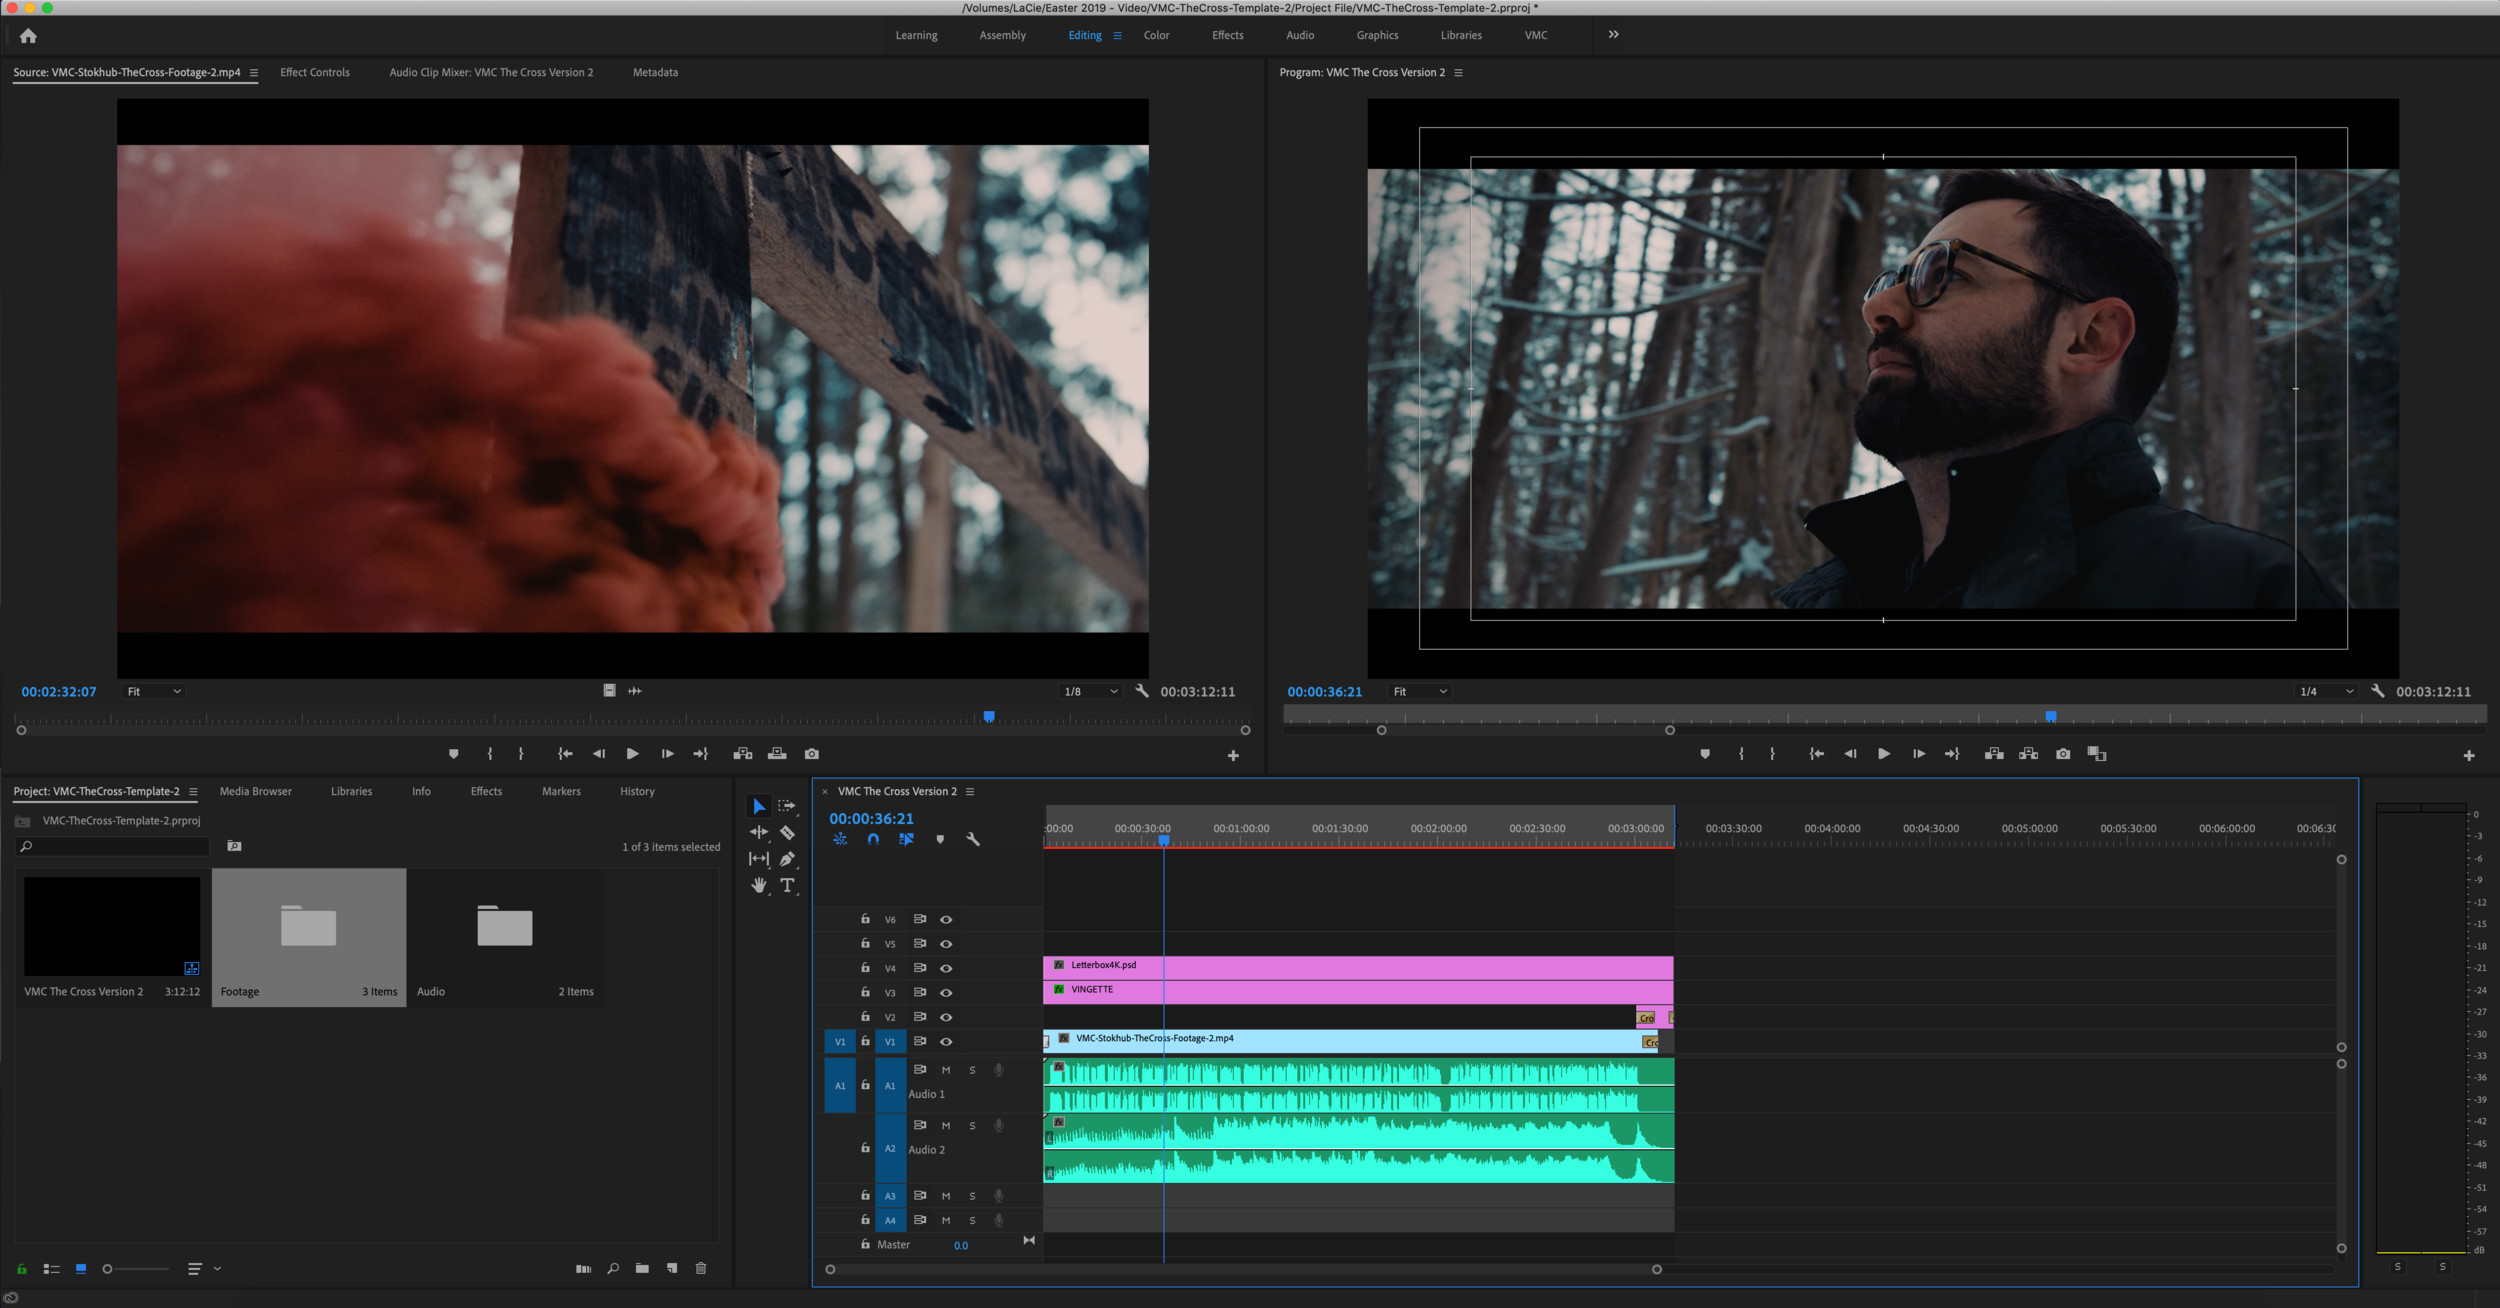 Take Control - Ability to edit all the shots, music, 'the cross' title, and audio